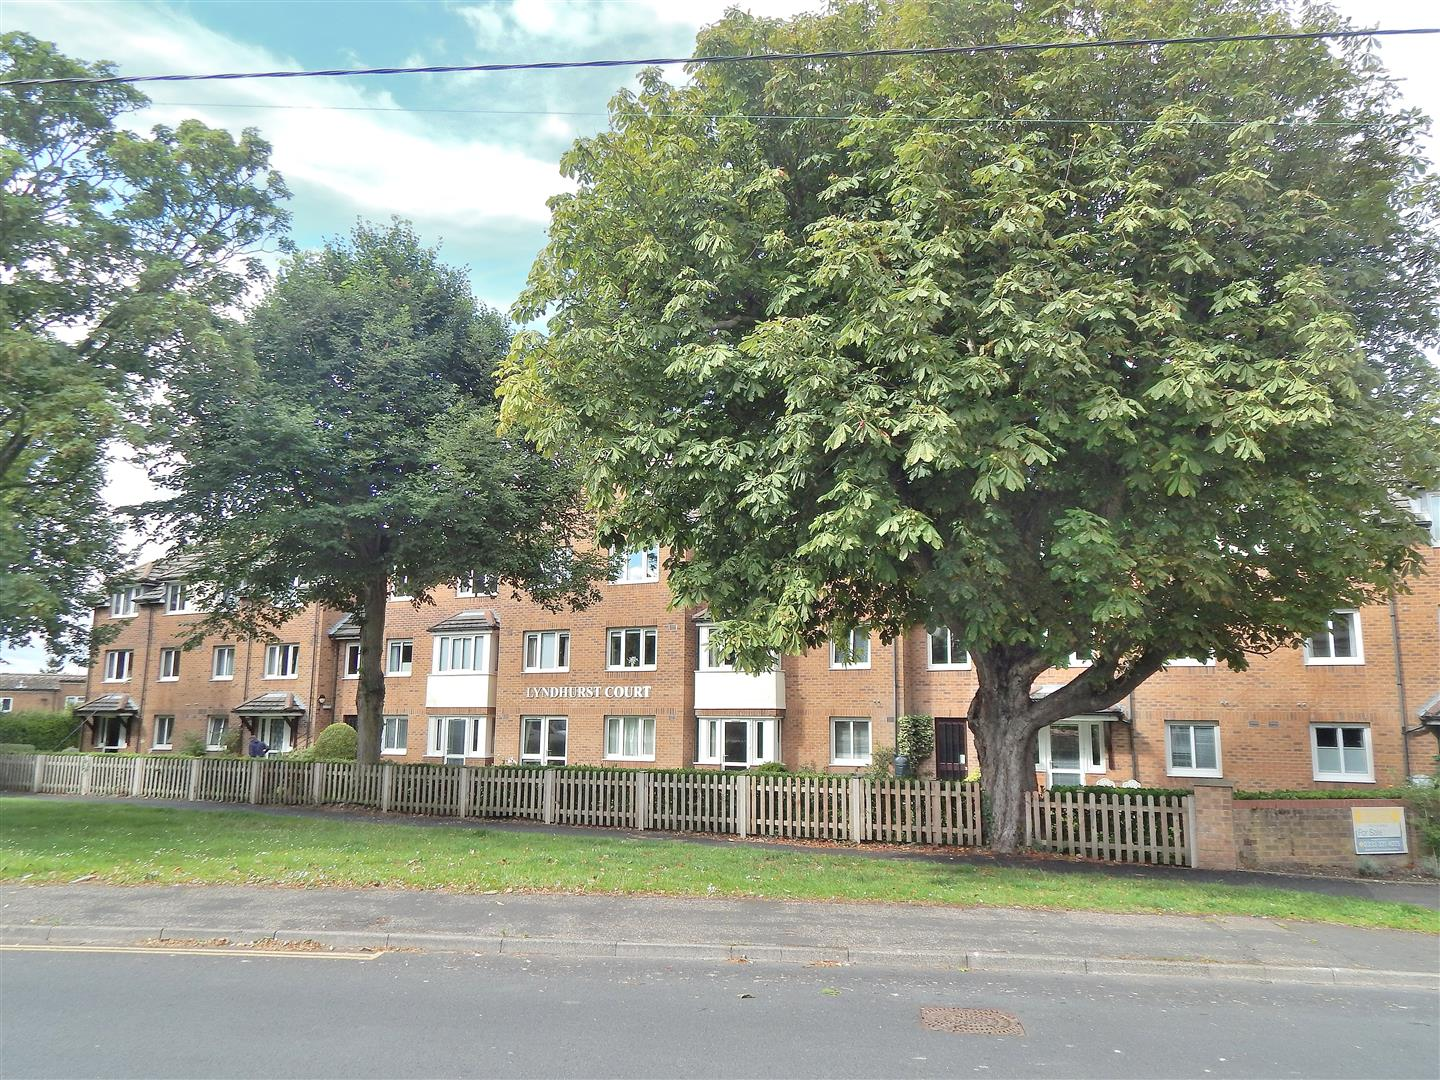 2 bed flat for sale in Hunstanton, PE36 5AE - Property Image 1